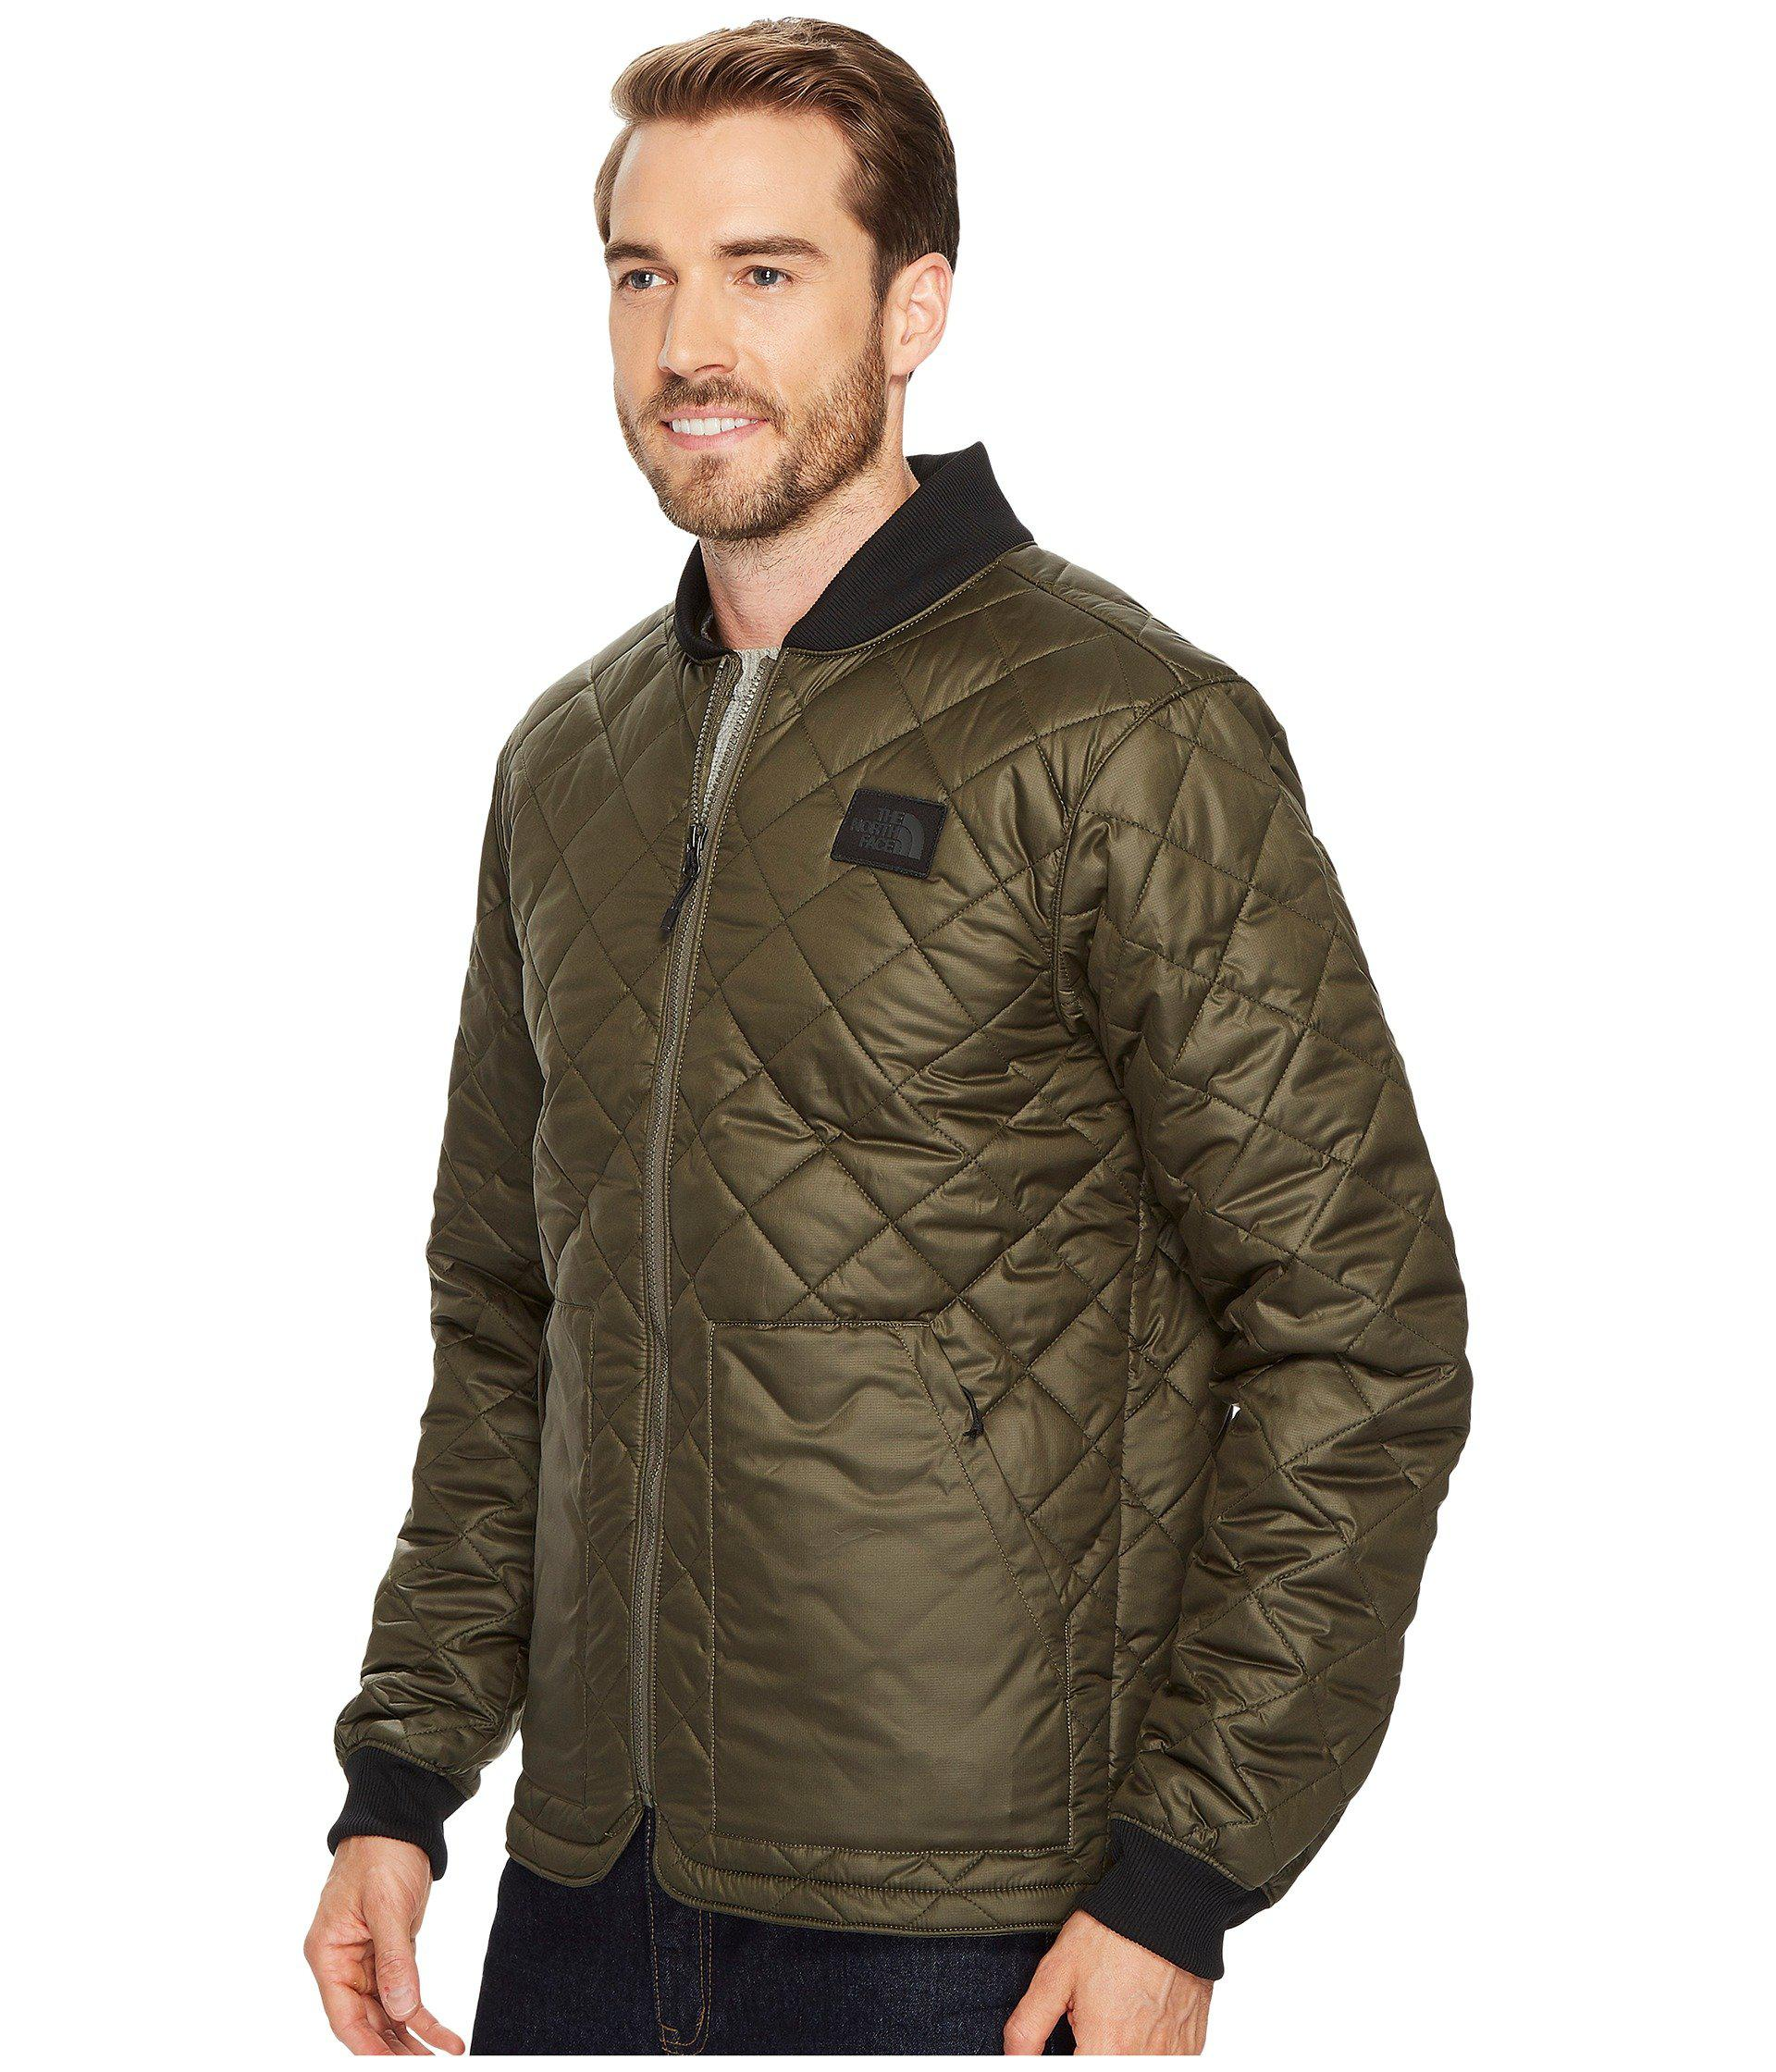 992a9890d0d9 Lyst - The North Face Cuchillo Insulated Jacket in Green for Men